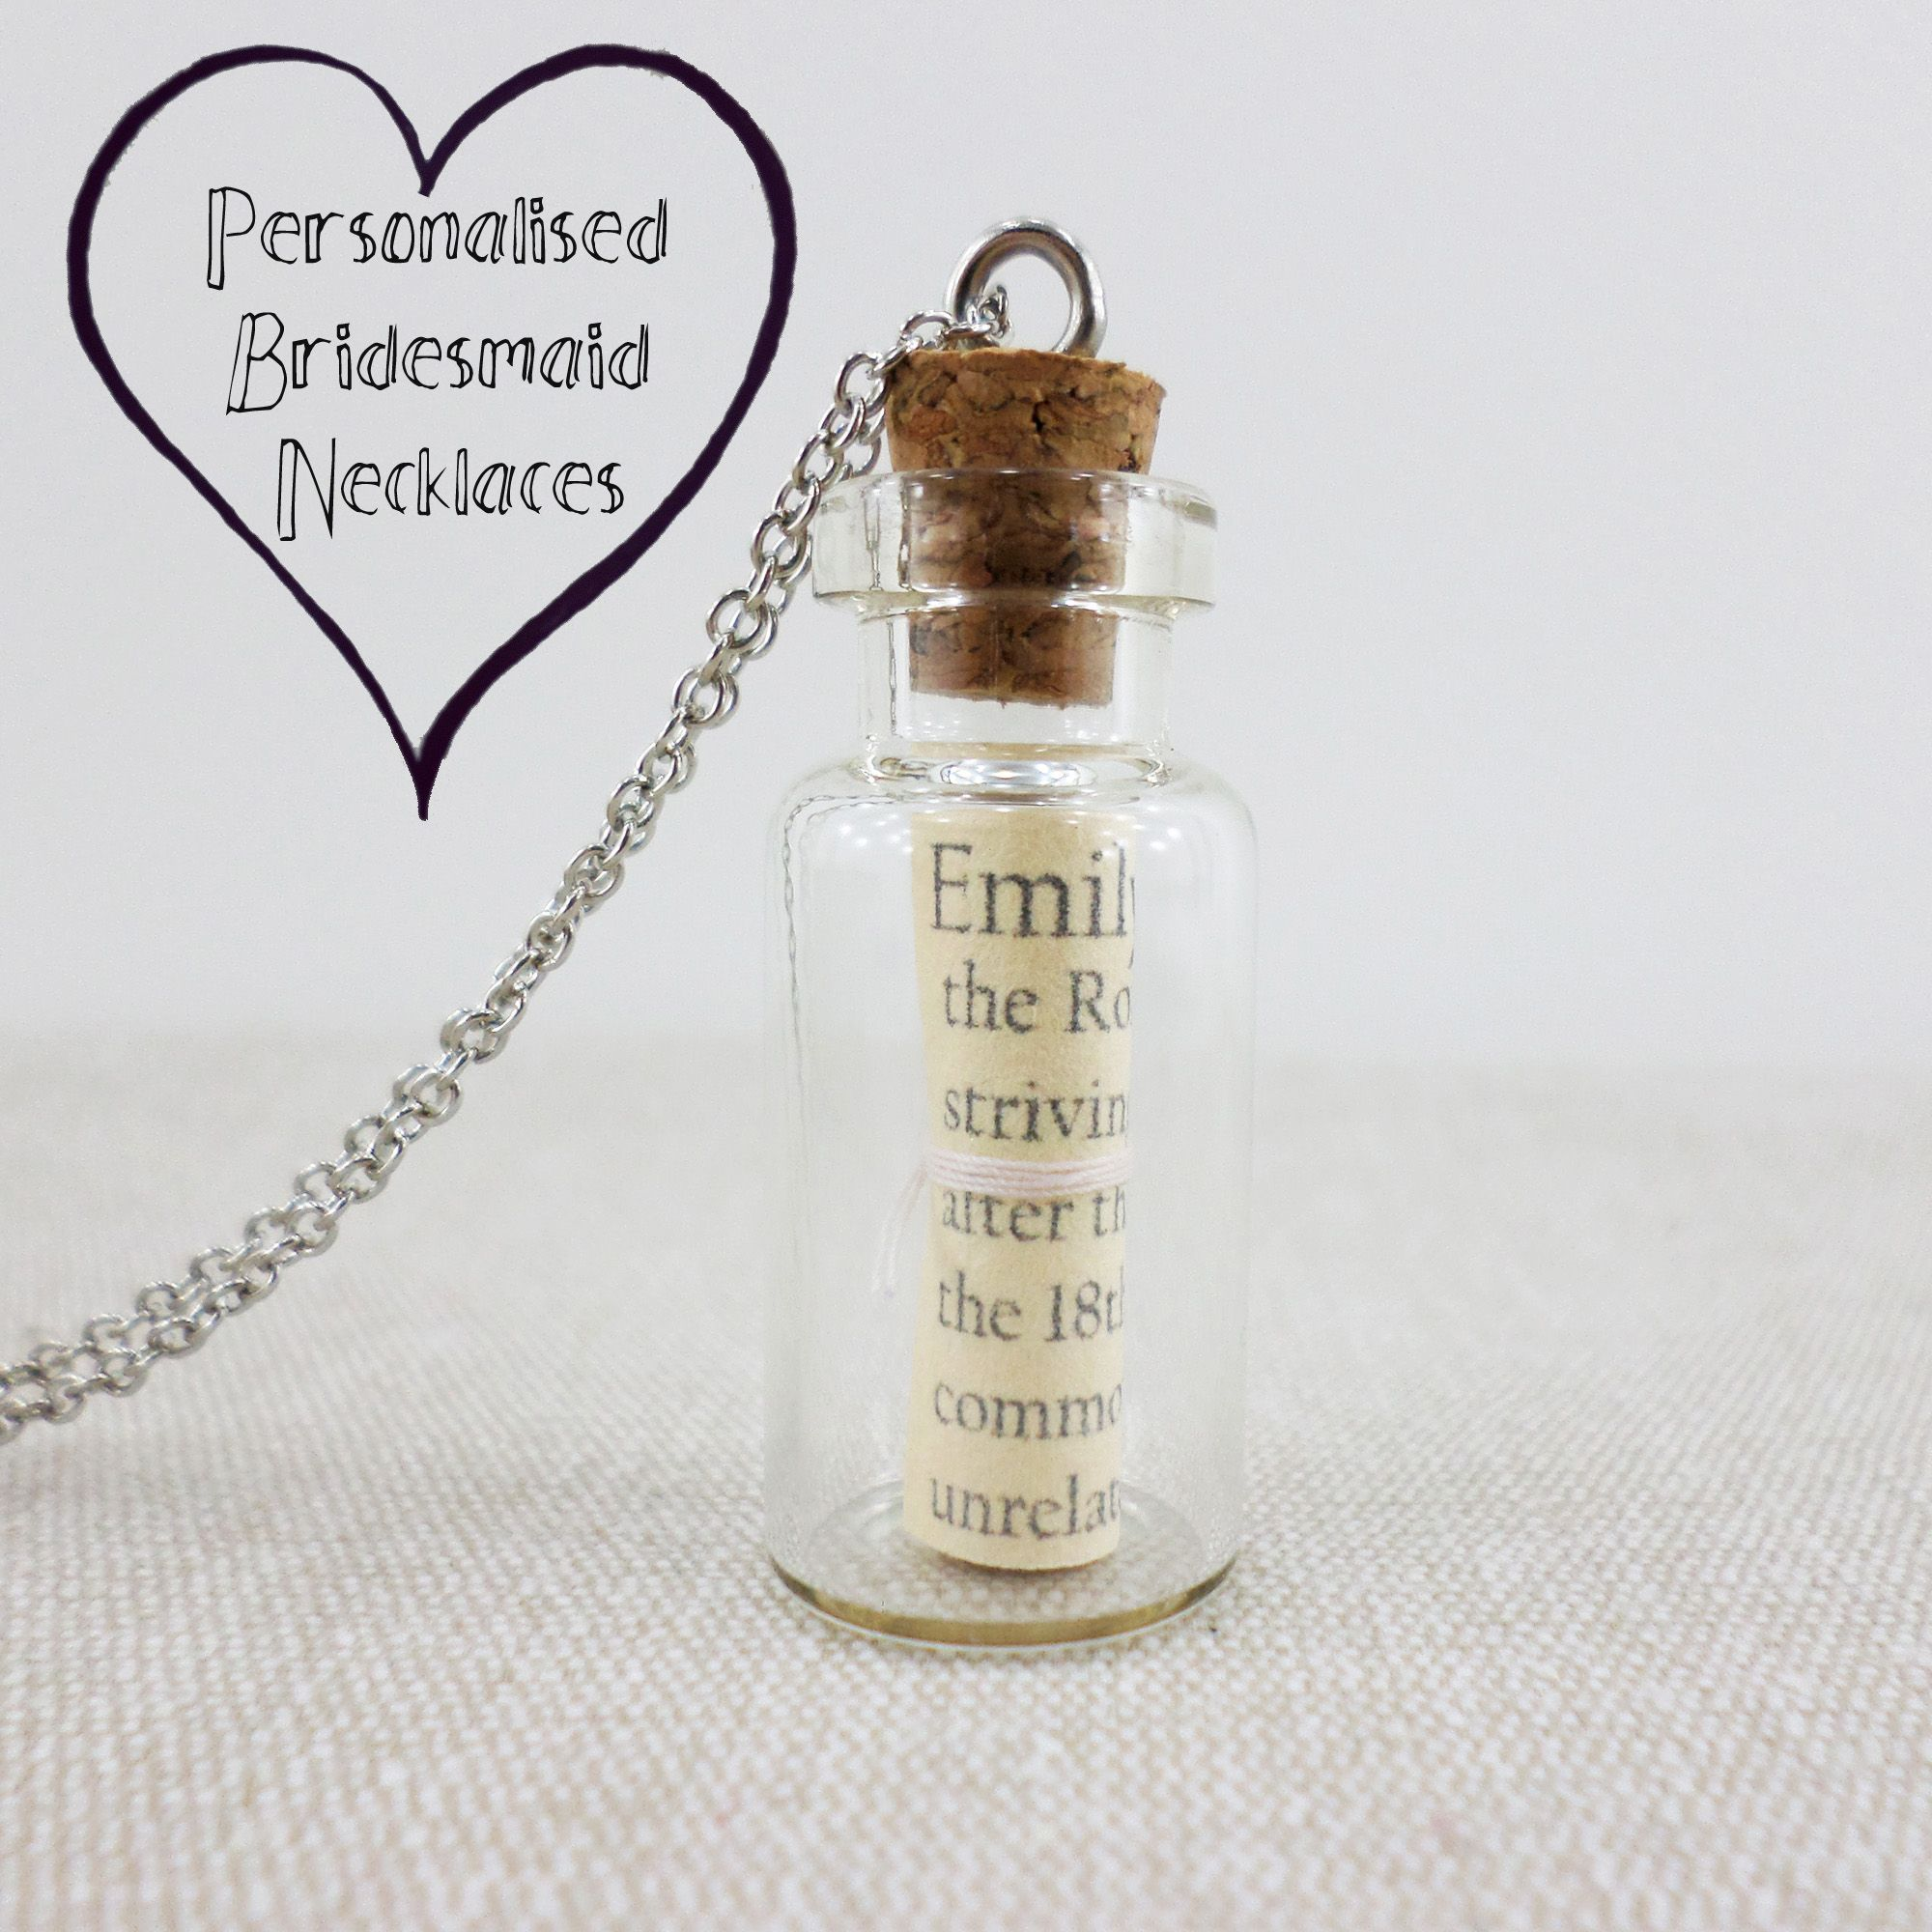 Perfect Wedding Gift Ideas: The Perfect Bridesmaid Gift. Celebrate Your Friendship